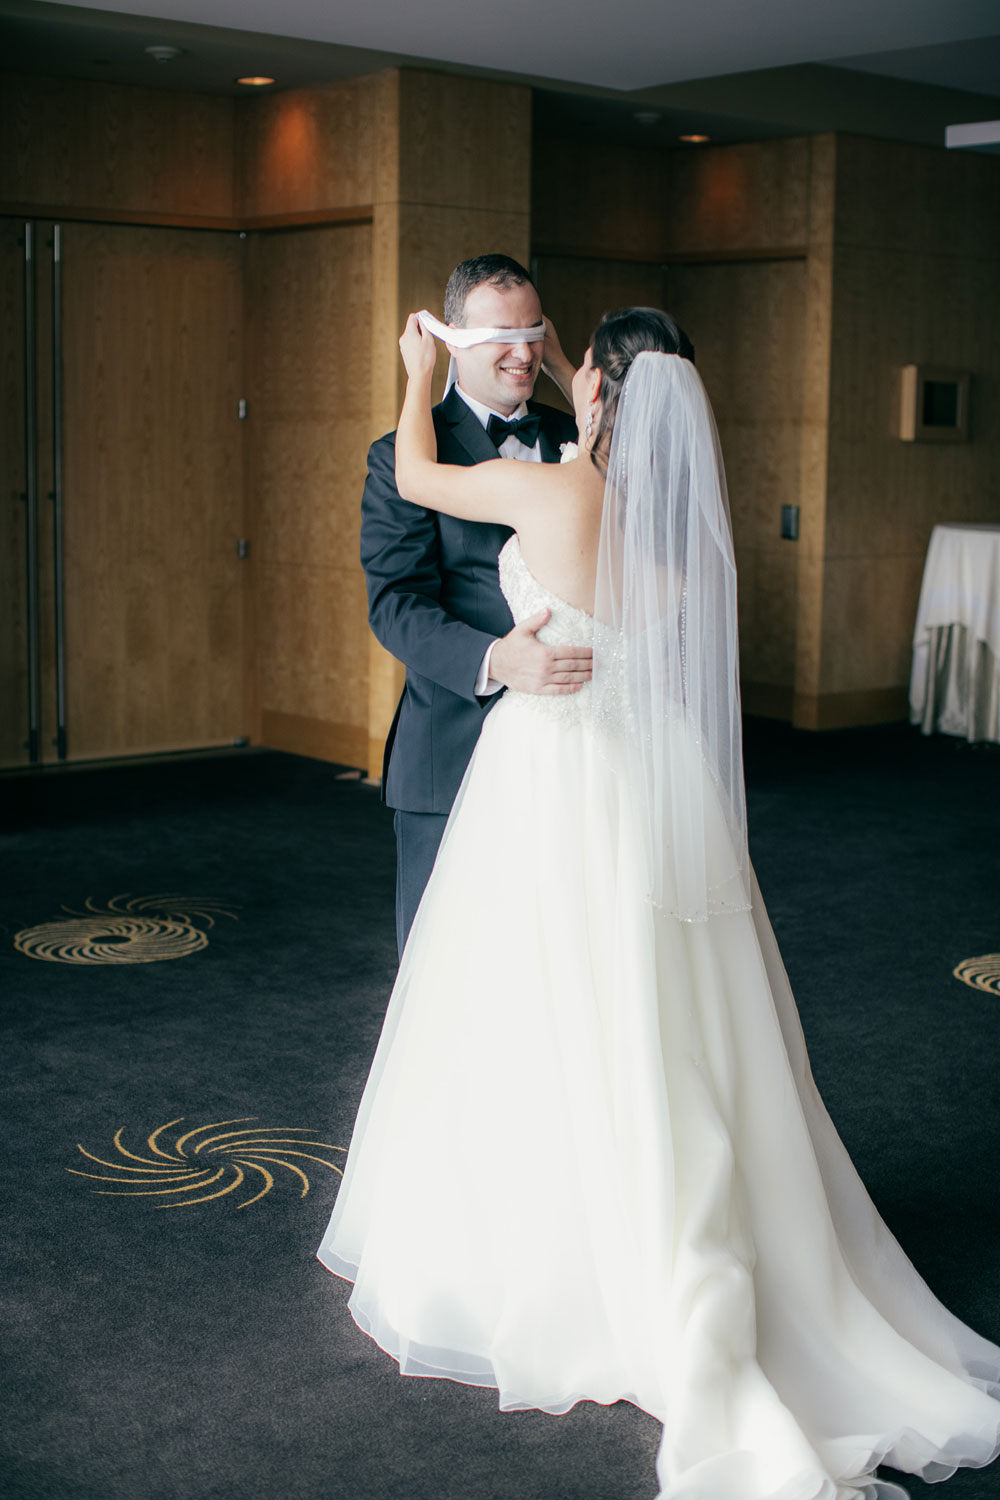 four-seasons-seattle-wedding-clane-gessel-photos-07